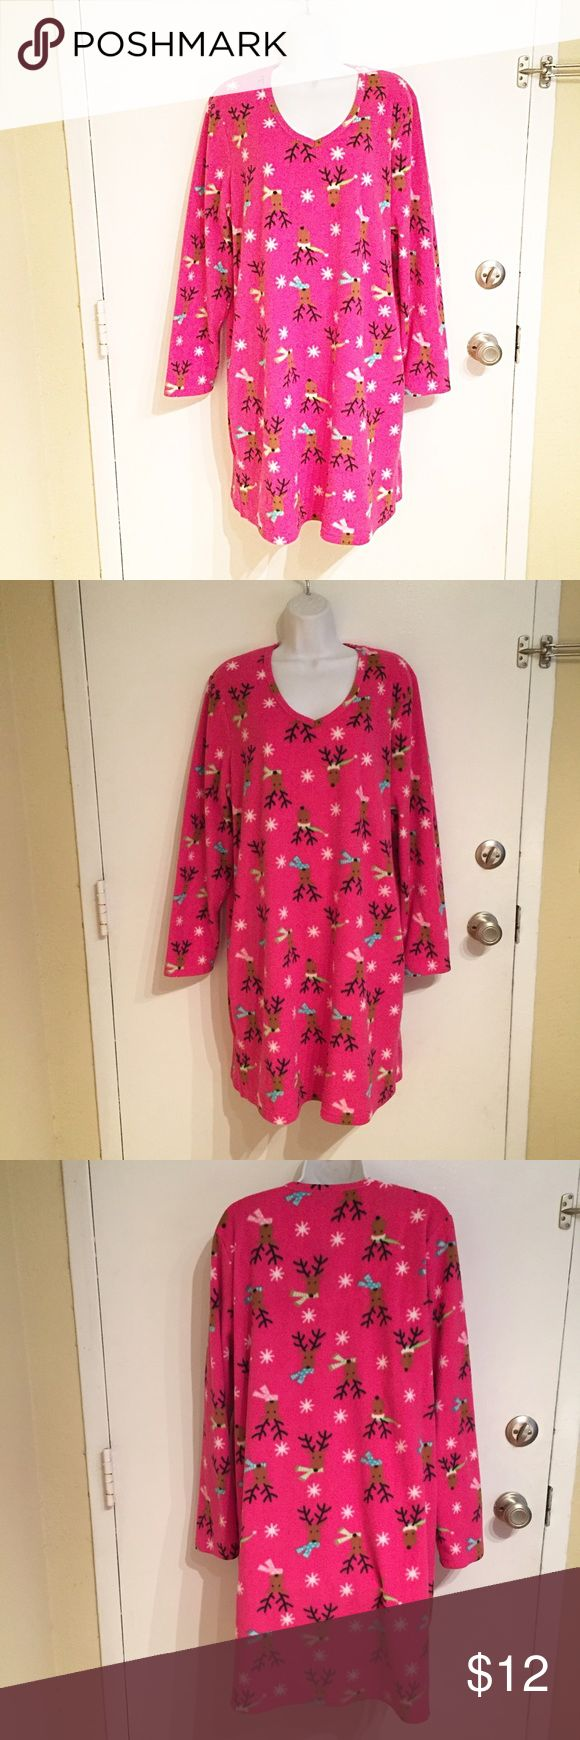 Warm & Cozy Christmas Reindeer Nightgown Warm and cozy long sleeve fleece nightgown with cute Christmas reindeer print. Size XL. #warm #cozy #soft #fleece #christmas #festive #holiday #reindeer #snowflake #nightgown #pajamas #lounge #punkydoodle  No modeling Smoke and pet free home I do discount bundles Kim Rogers Intimates & Sleepwear Pajamas